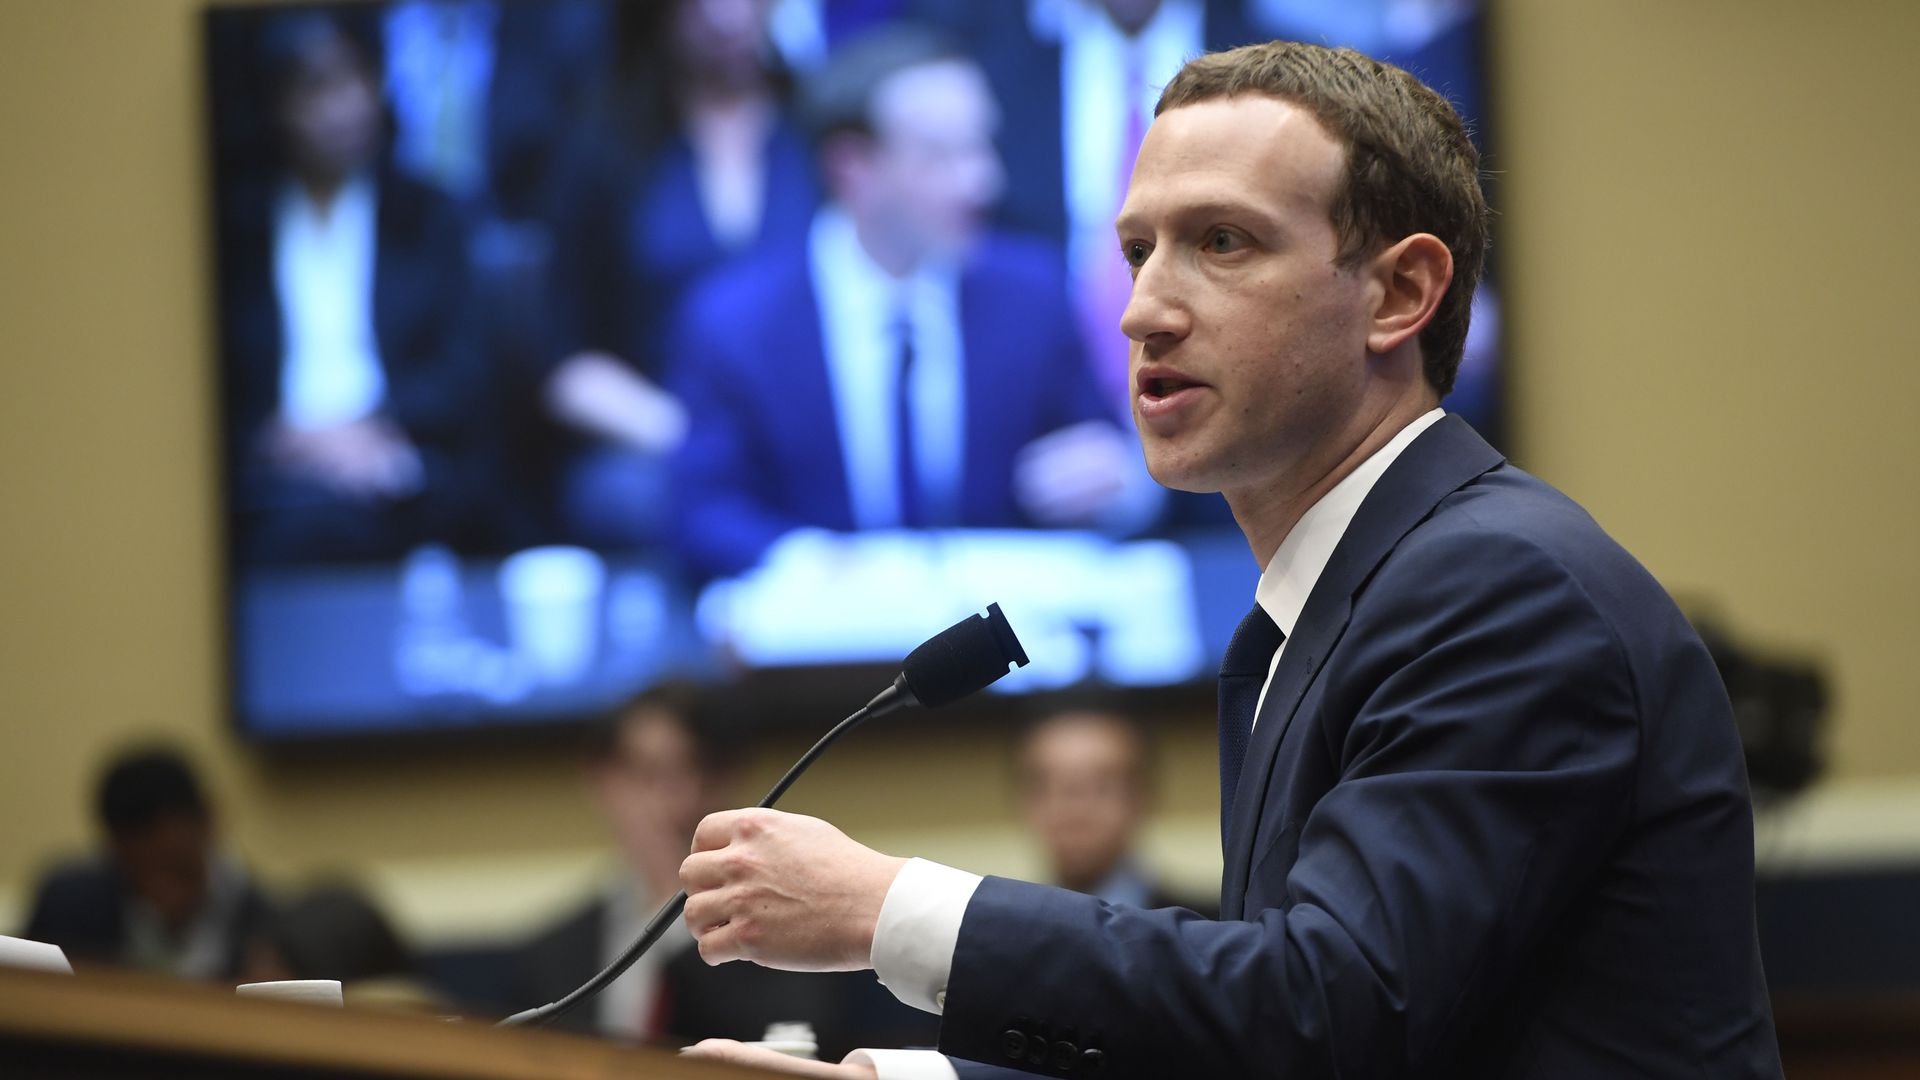 Mark Zuckerberg testifying in front of a big-screen TV that also shows him testifying